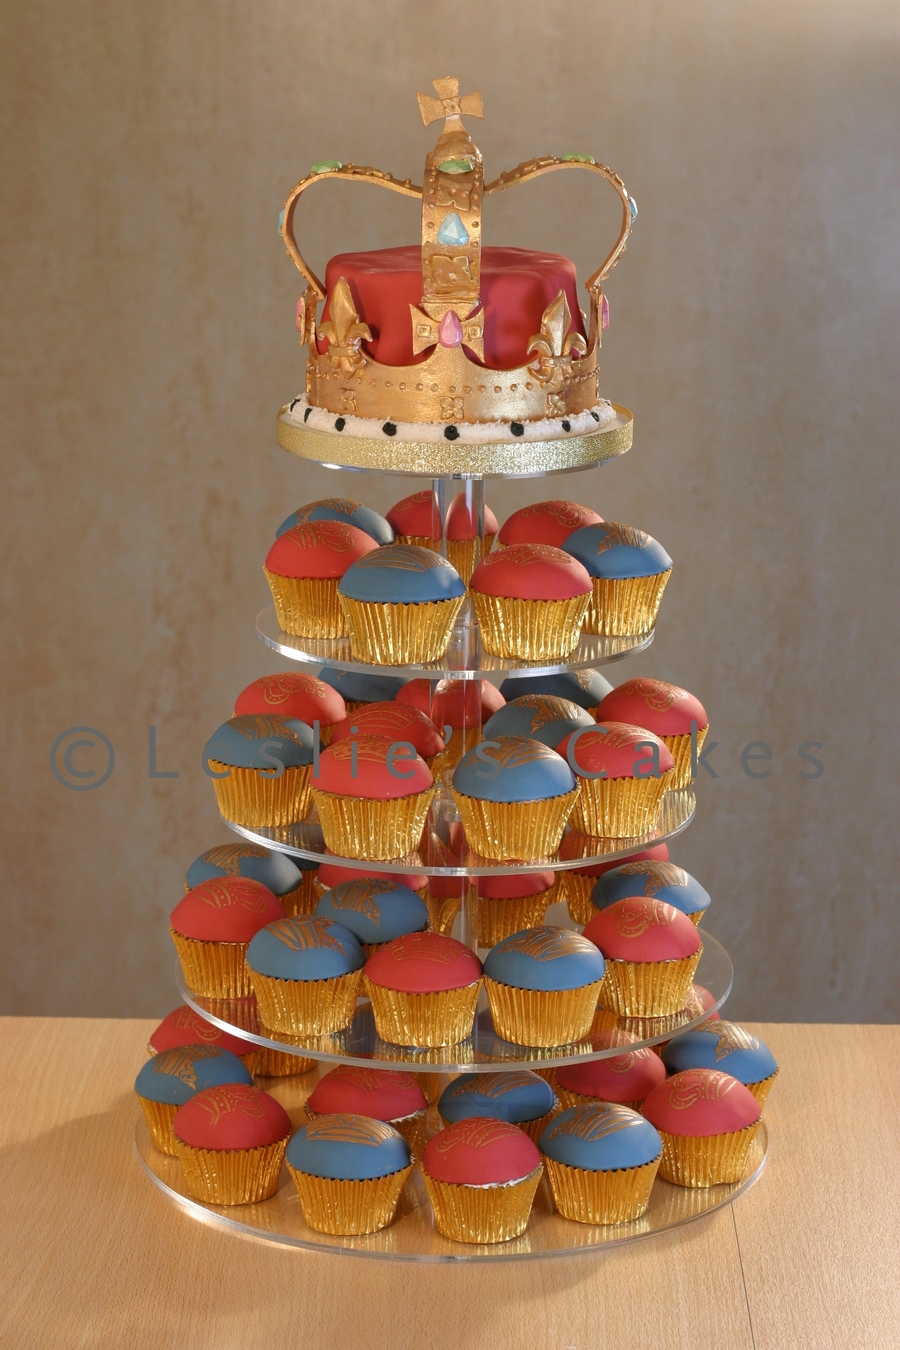 Queen's Diamond Jubilee Crown Cake  on Cake Central